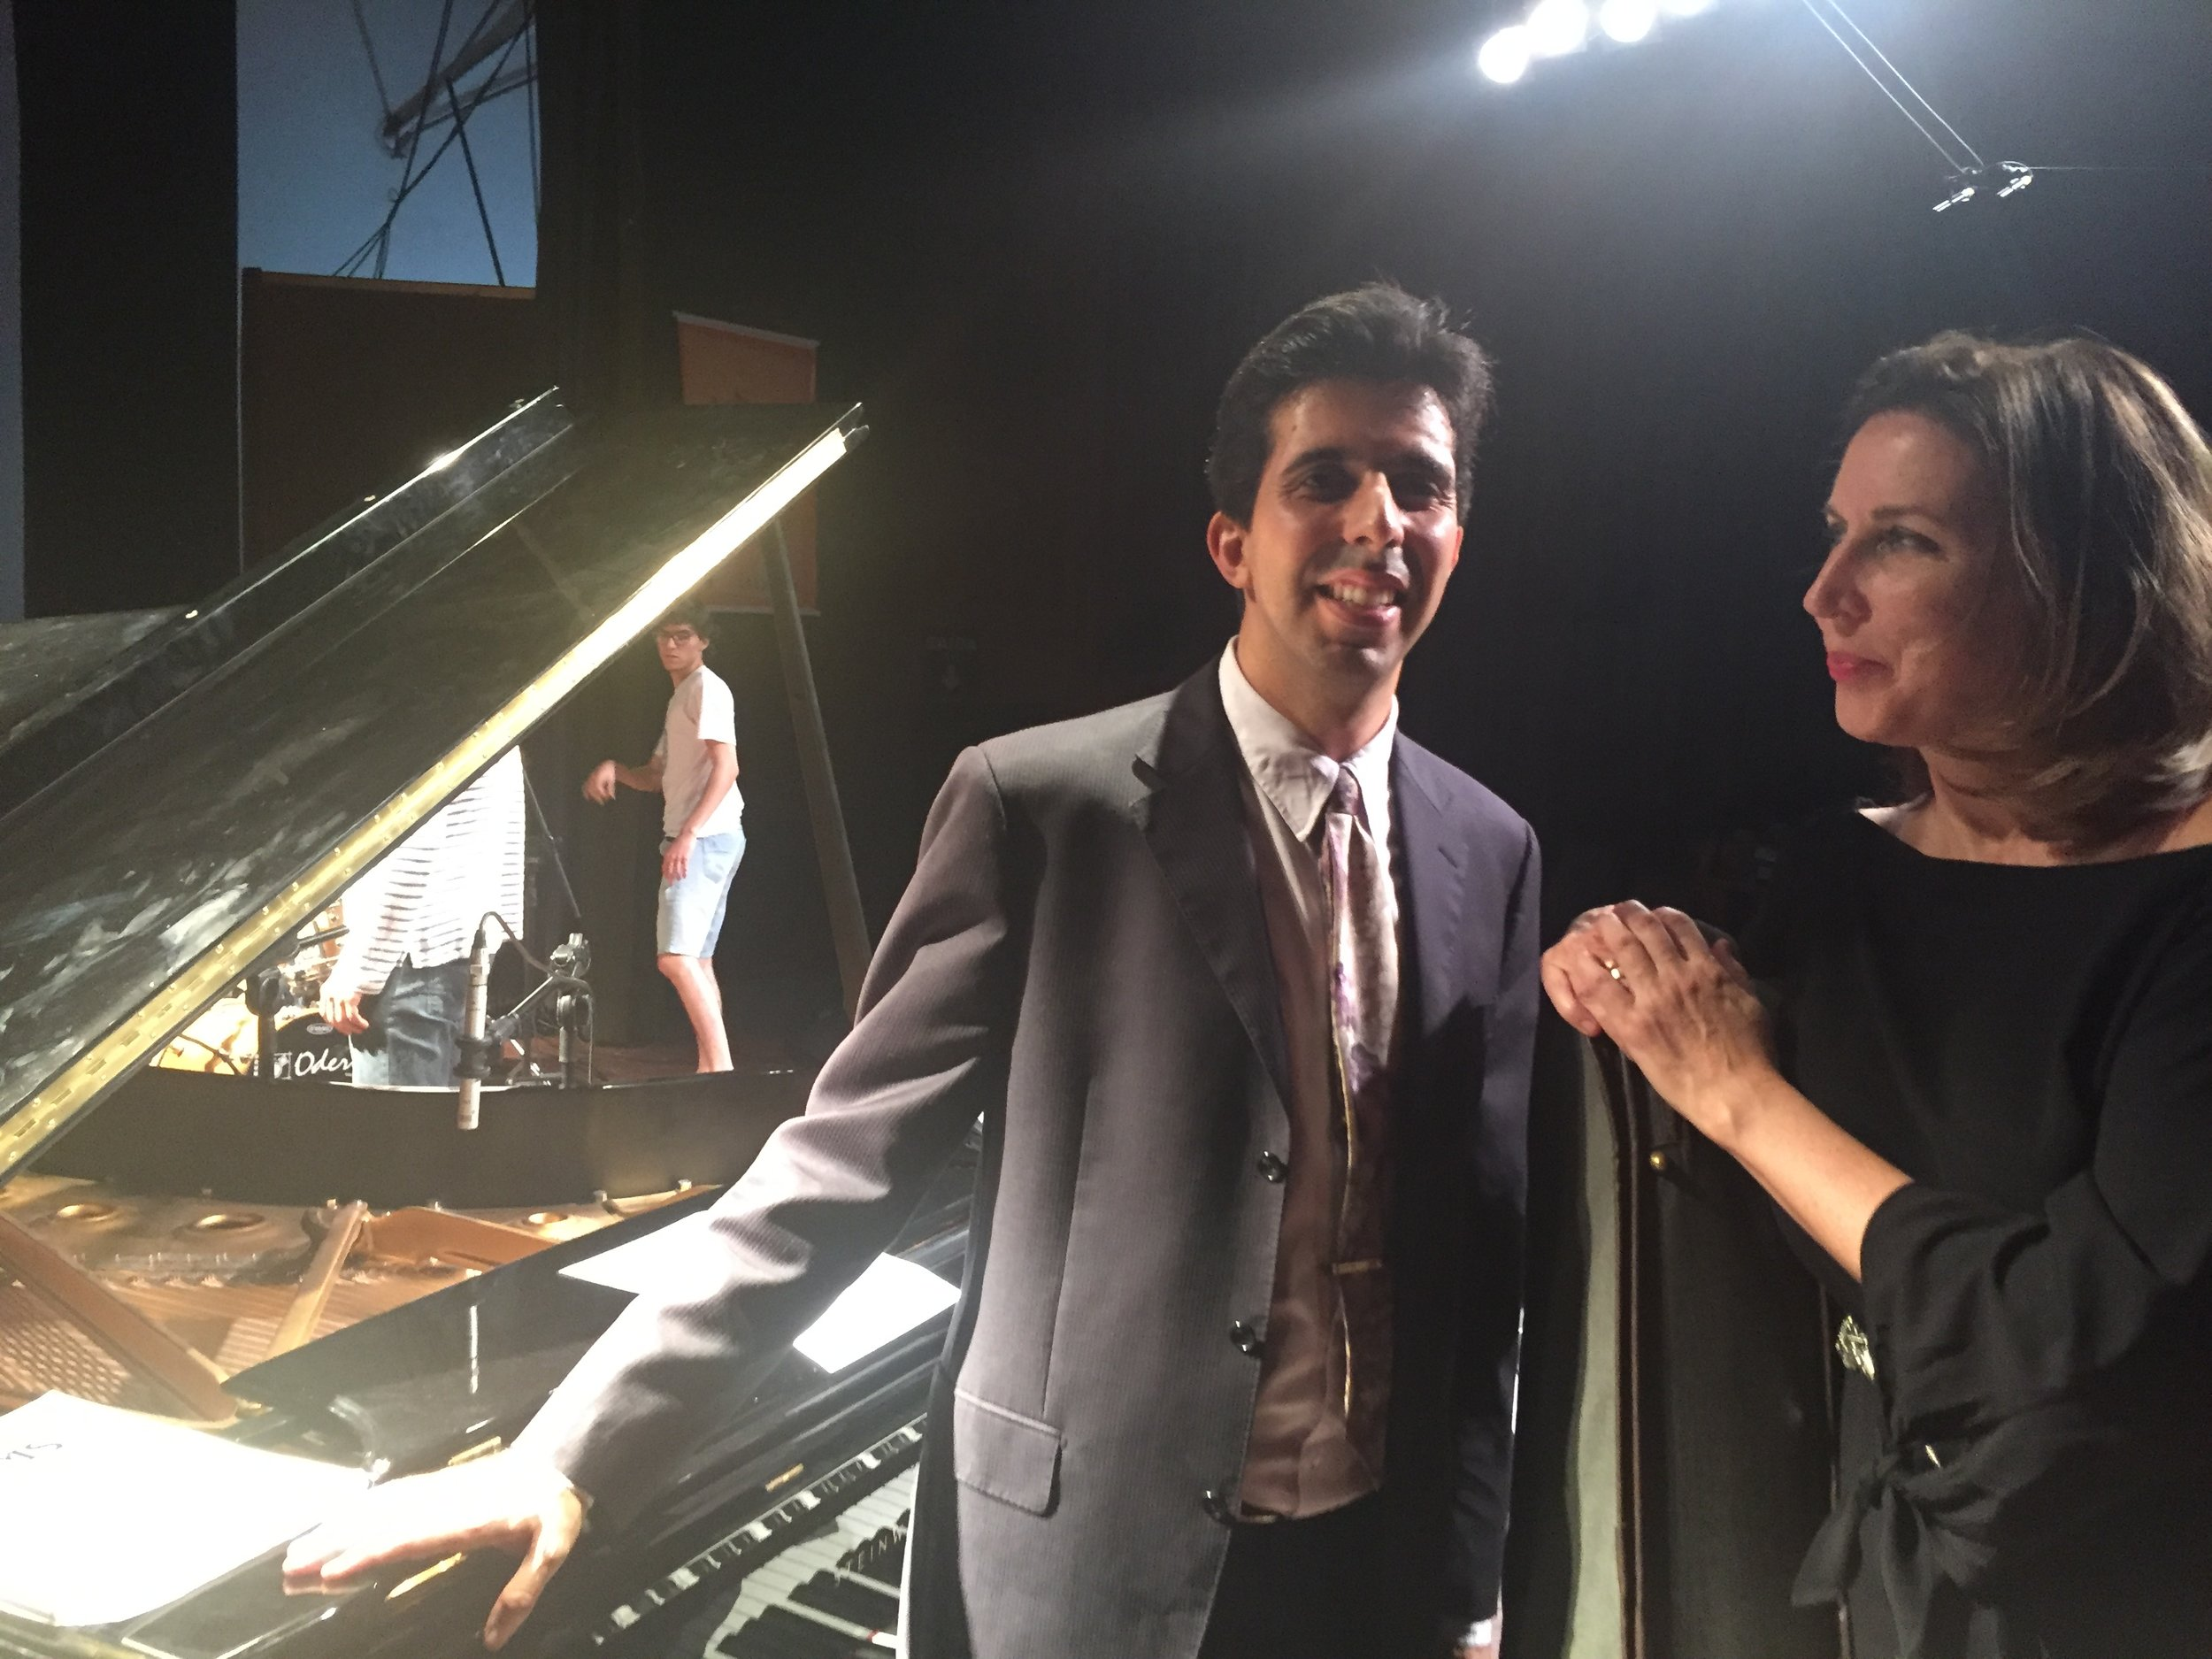 with pianist Durval Cesetti